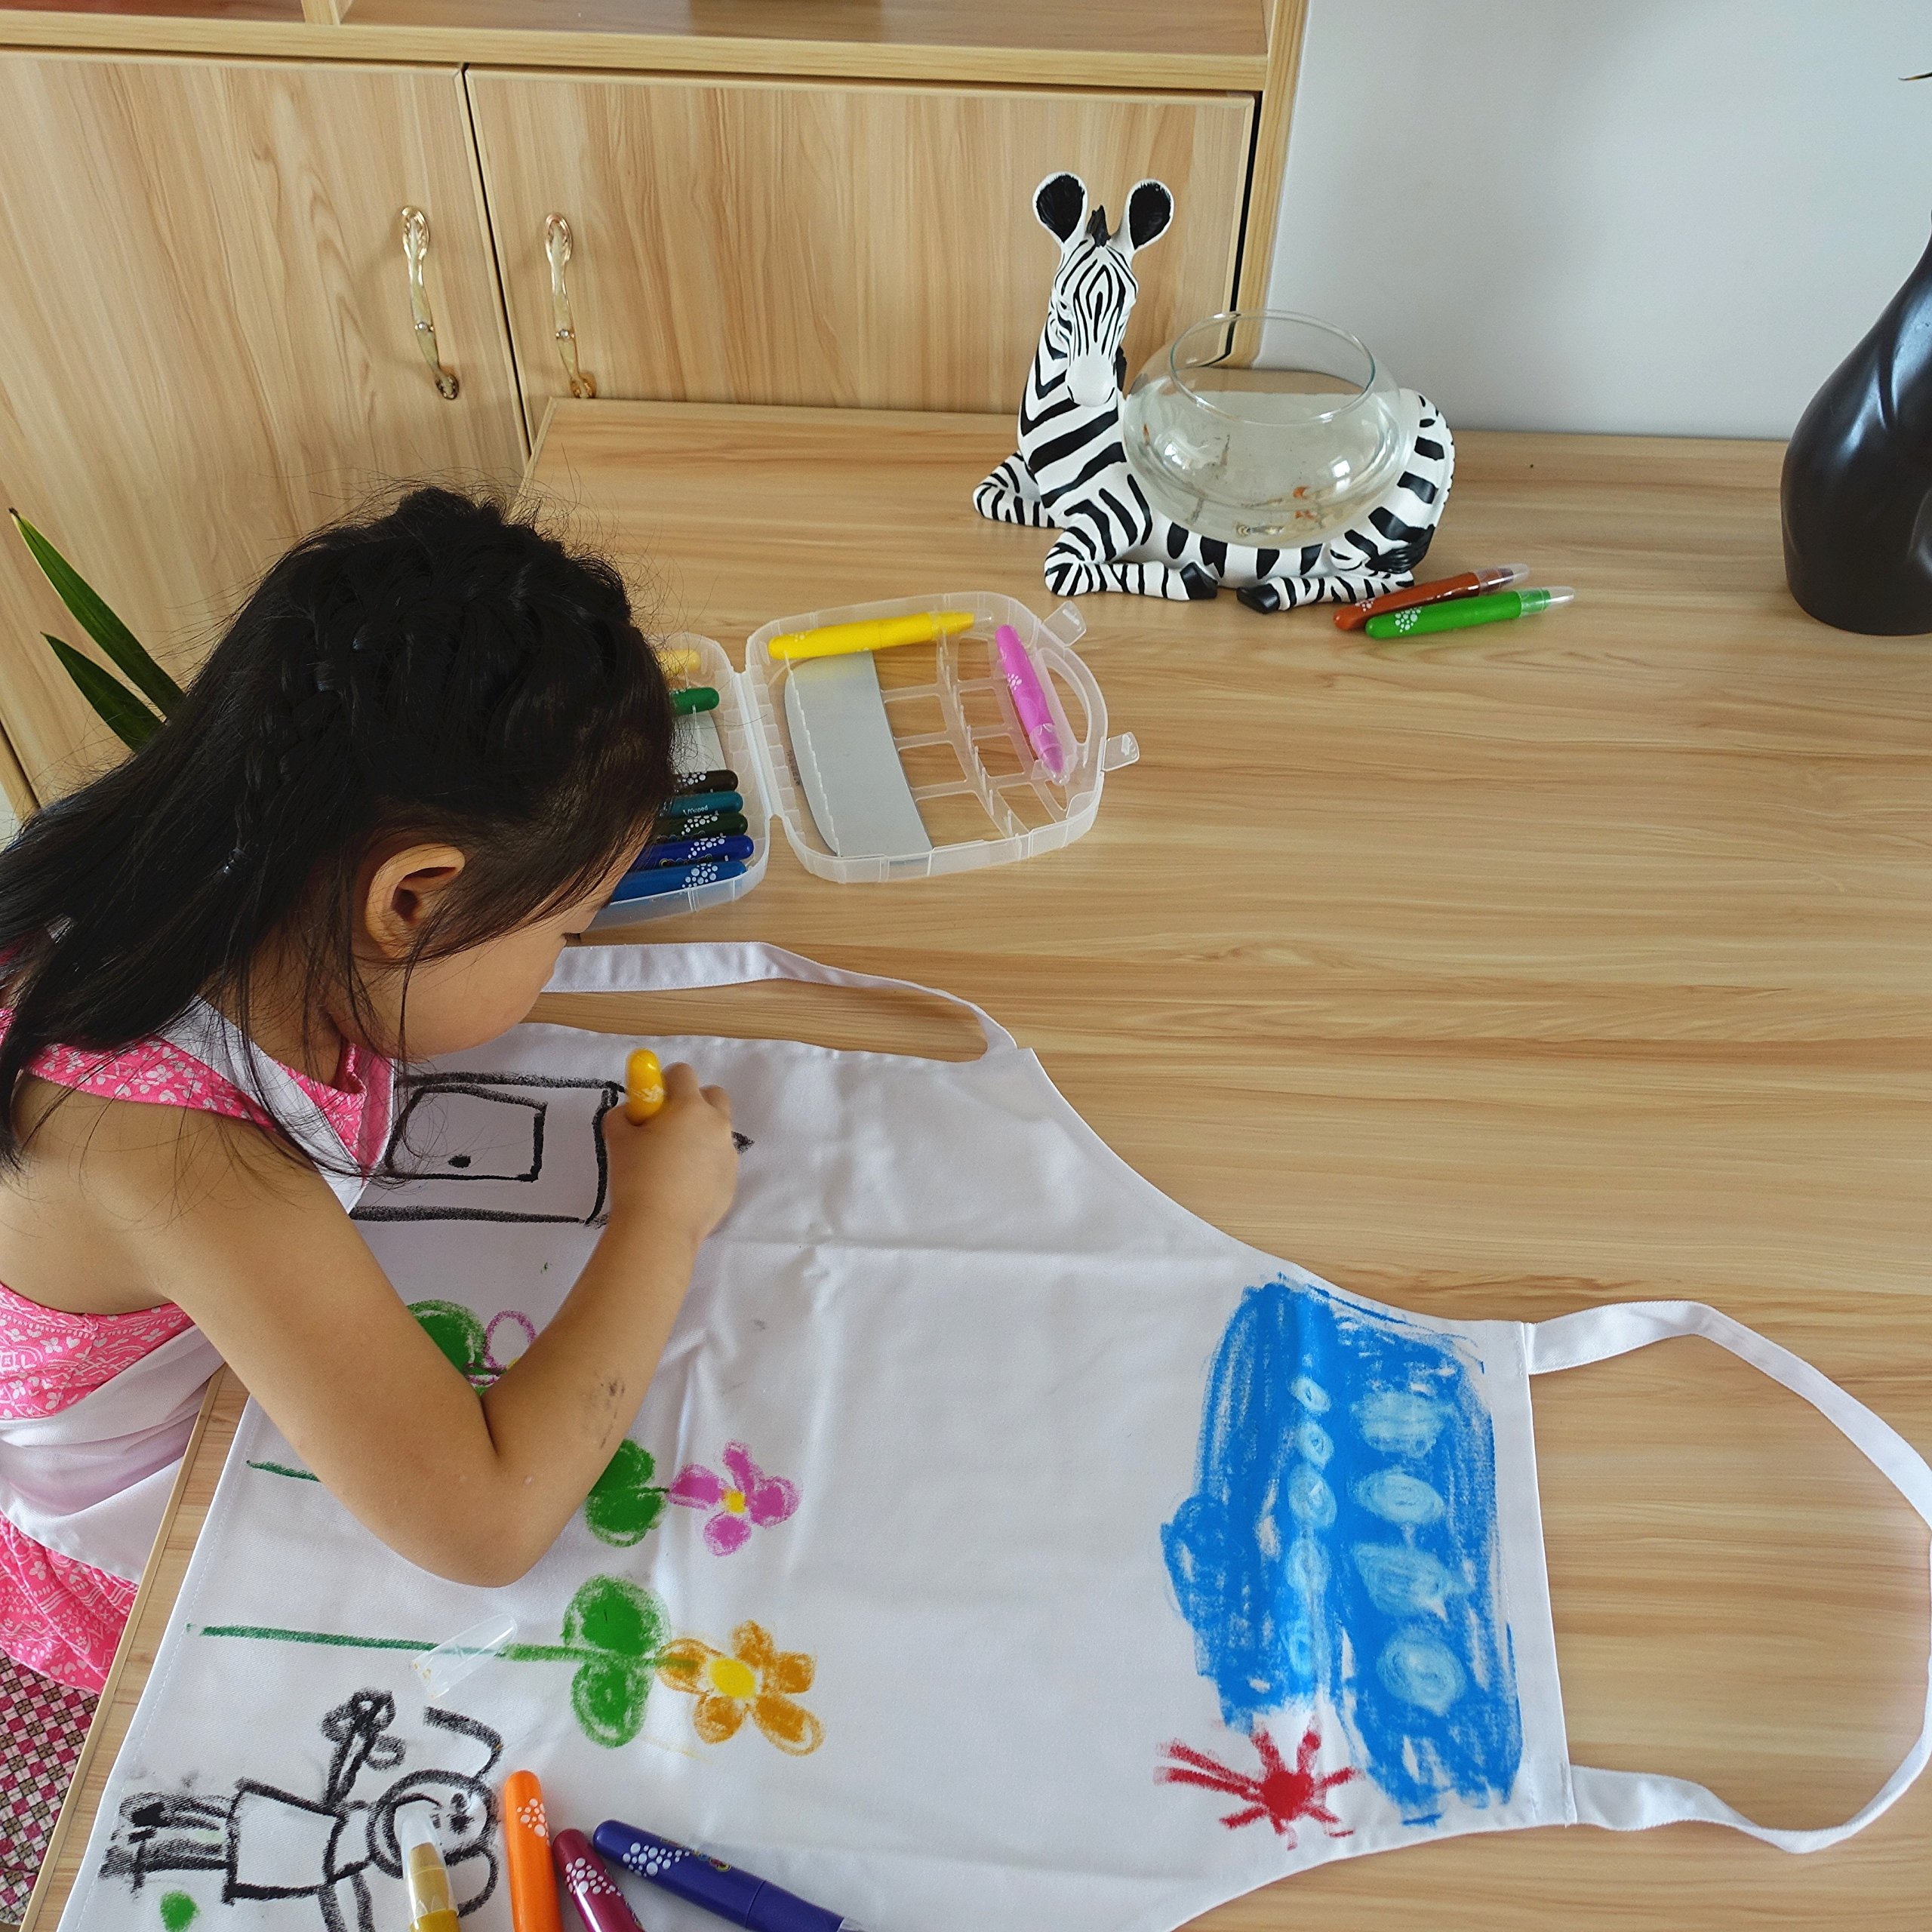 2 Pc-White kids'chef apron and hat set for cooking,baking,painting or decorating party (1-3Years) by MULAN (Image #8)